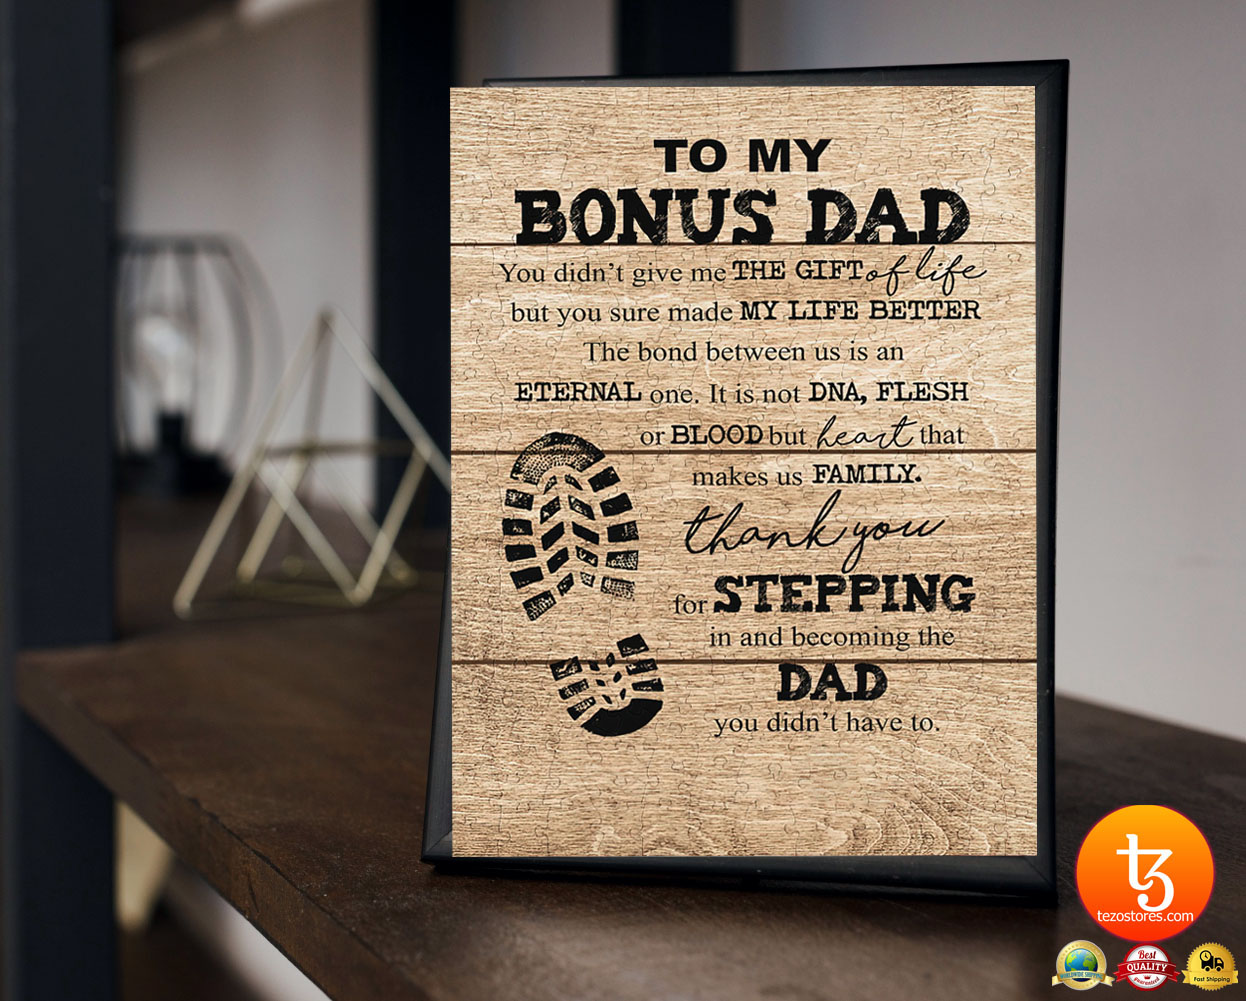 To my bonus dad you didn't give me the gift of life but you sure made my life better poster 23